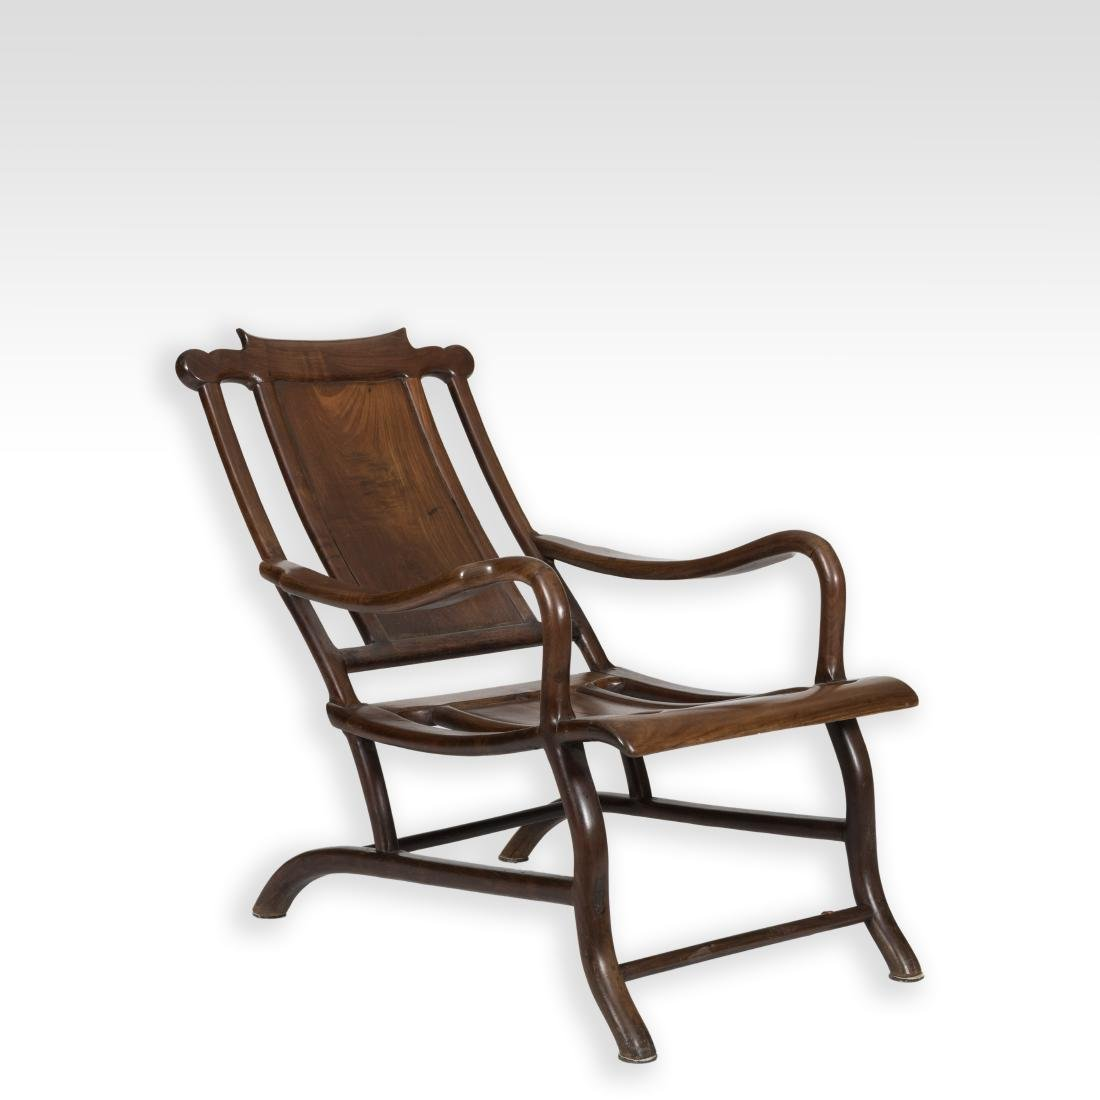 Chinese Yew Wood Plantation Chair